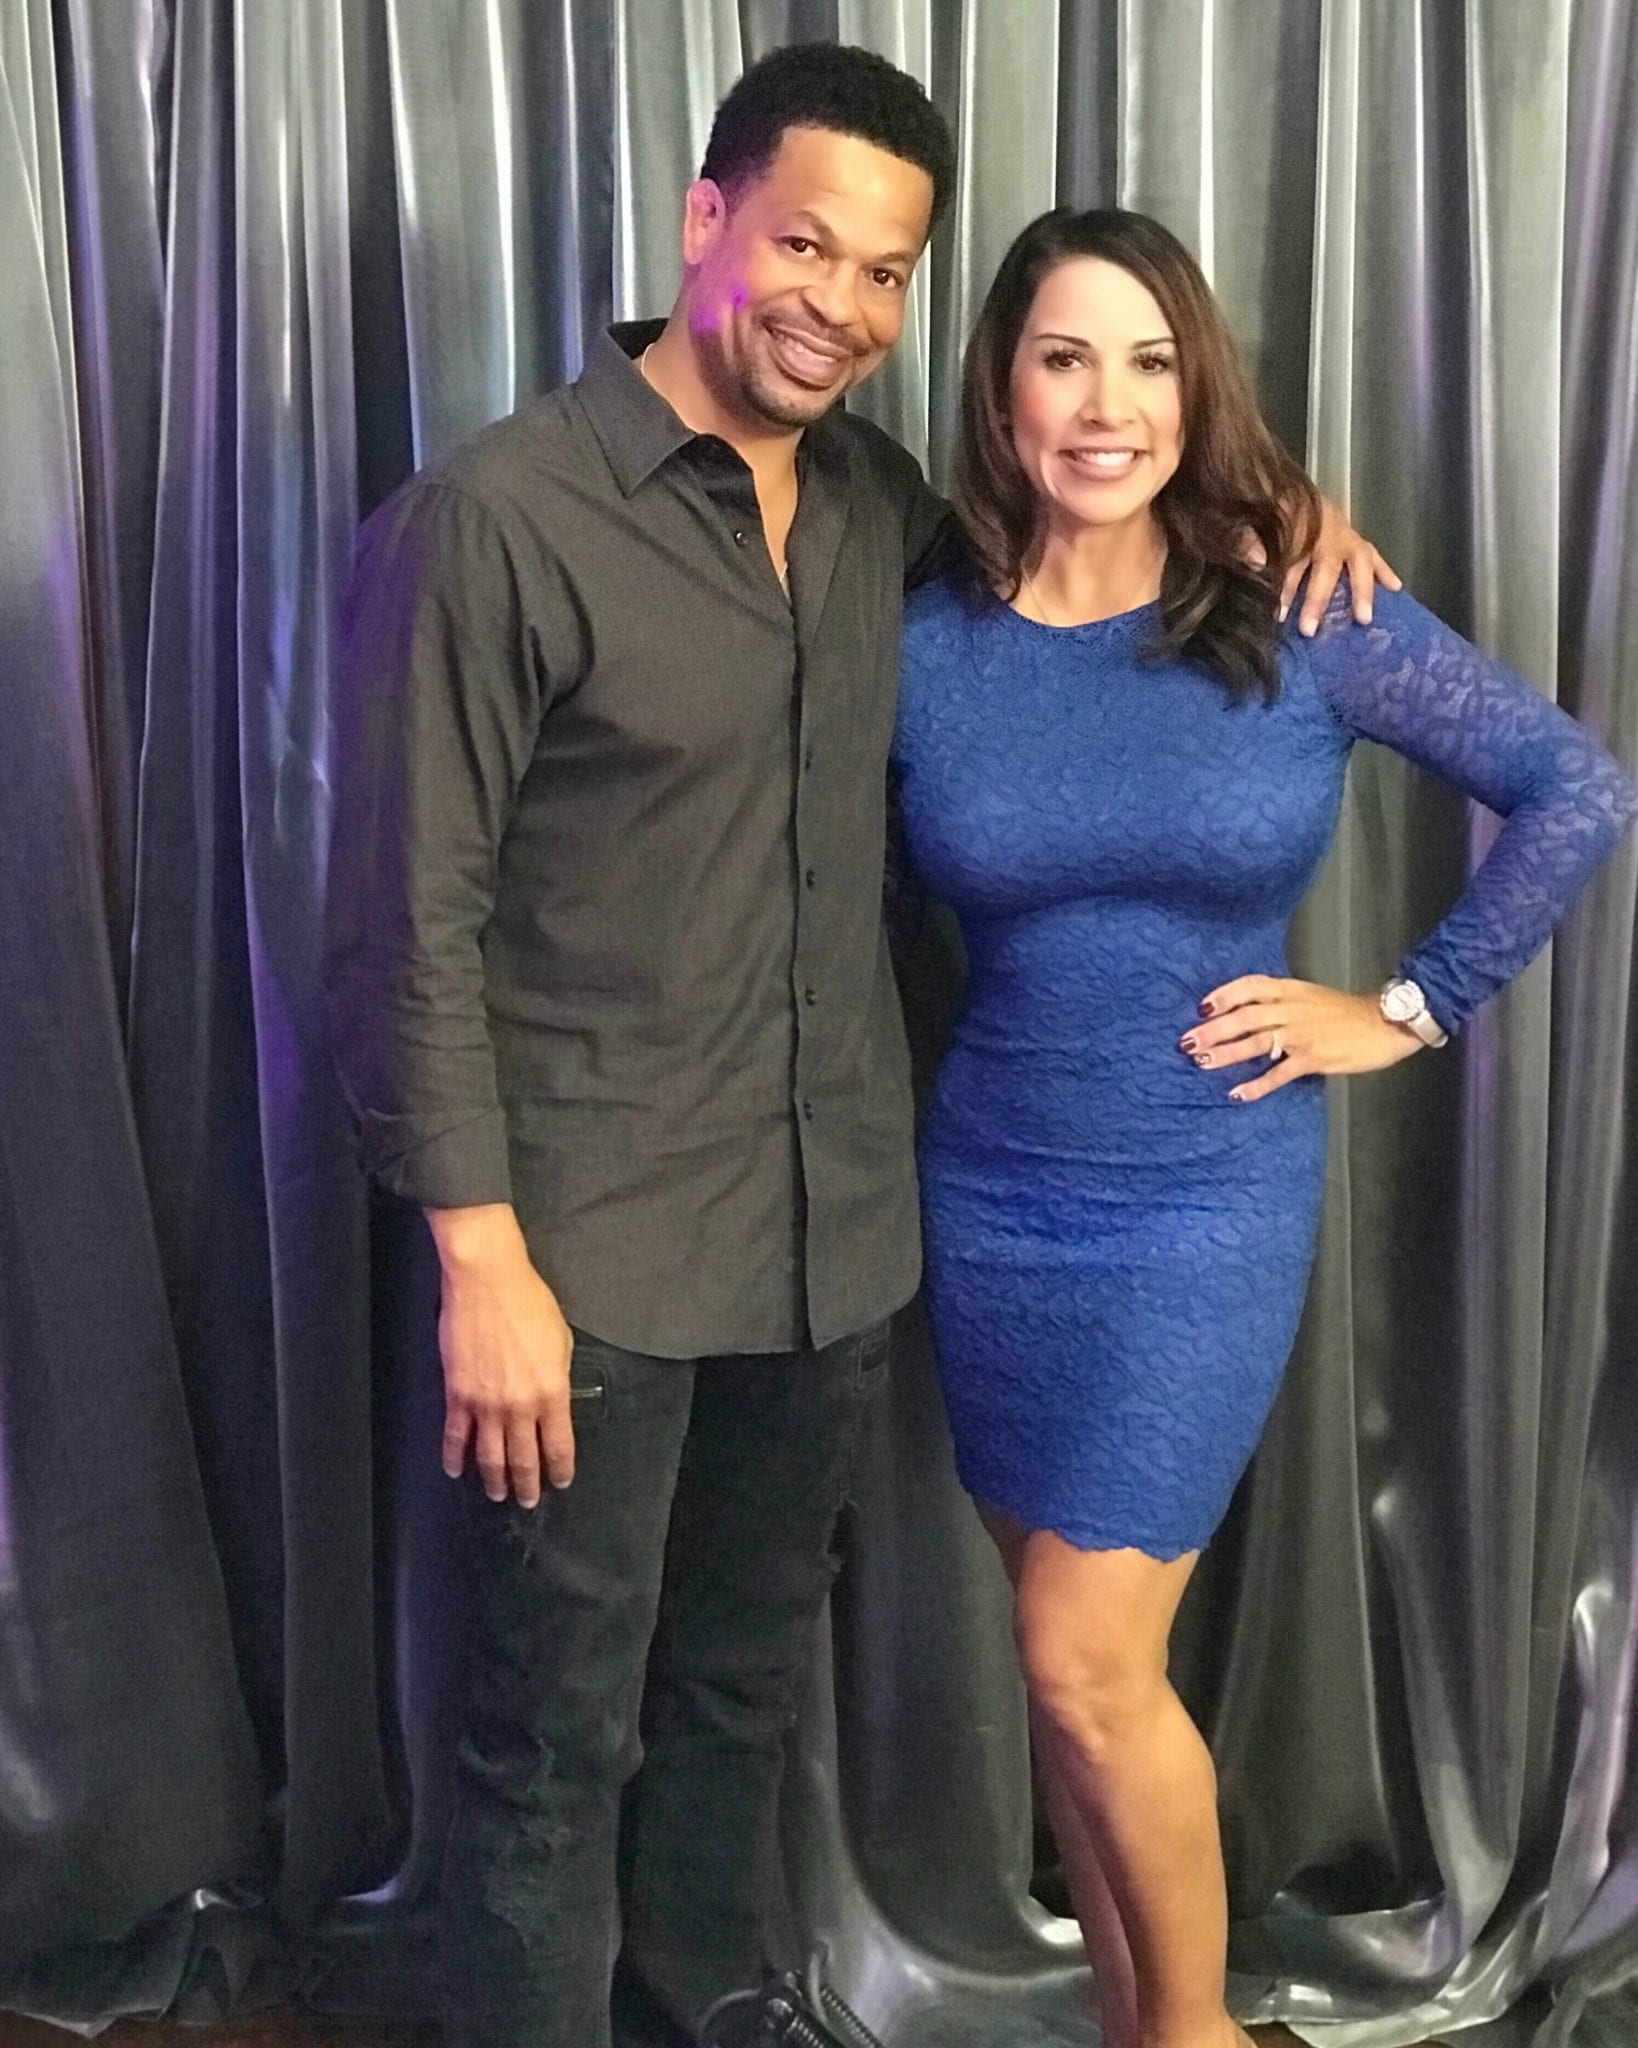 Robert Ferguson, CEO of Diet Free Life and Michelle Rivera of Michelle Rivera Lifestyle team up to create Rock Body Moms!